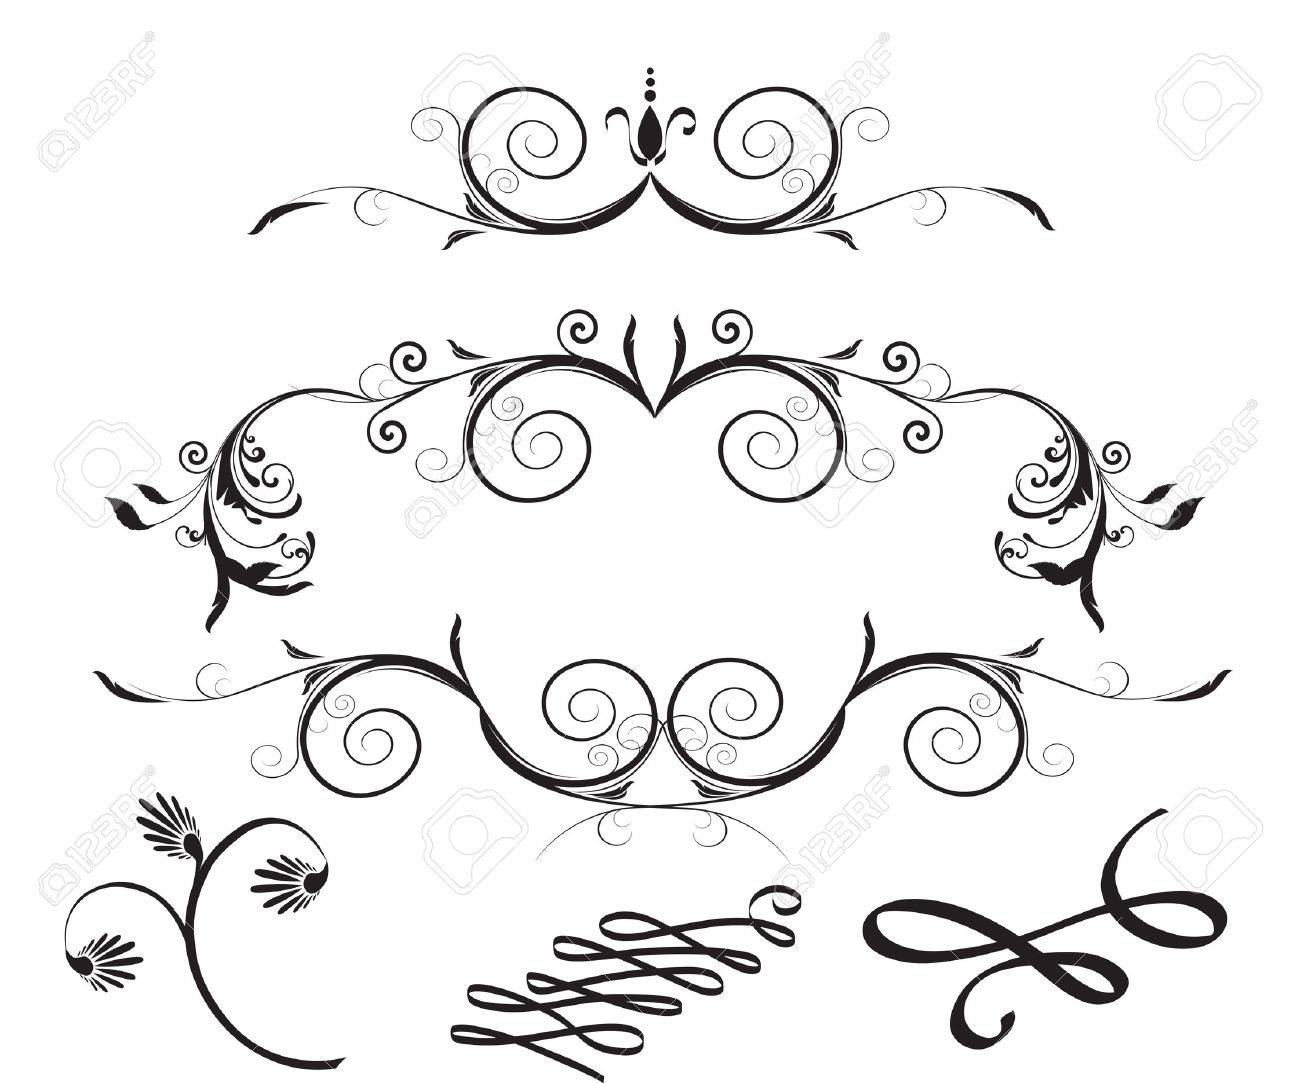 Decorative Floral Design Elements Stock Vector - 13659327